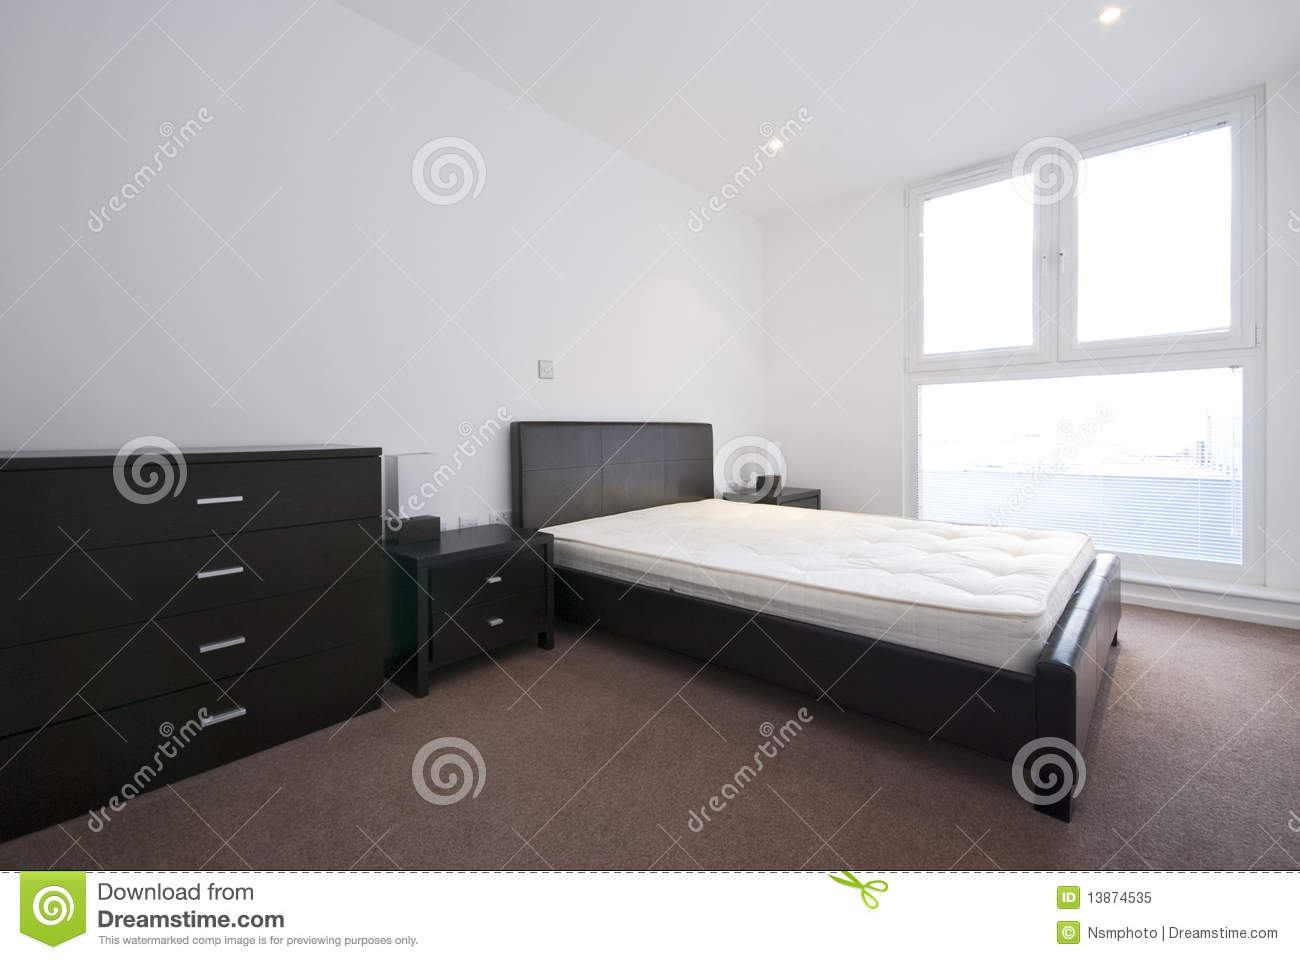 Double chambre coucher moderne avec le grand double b ti photo libre de droits image 13874535 for Photo chambre a coucher moderne